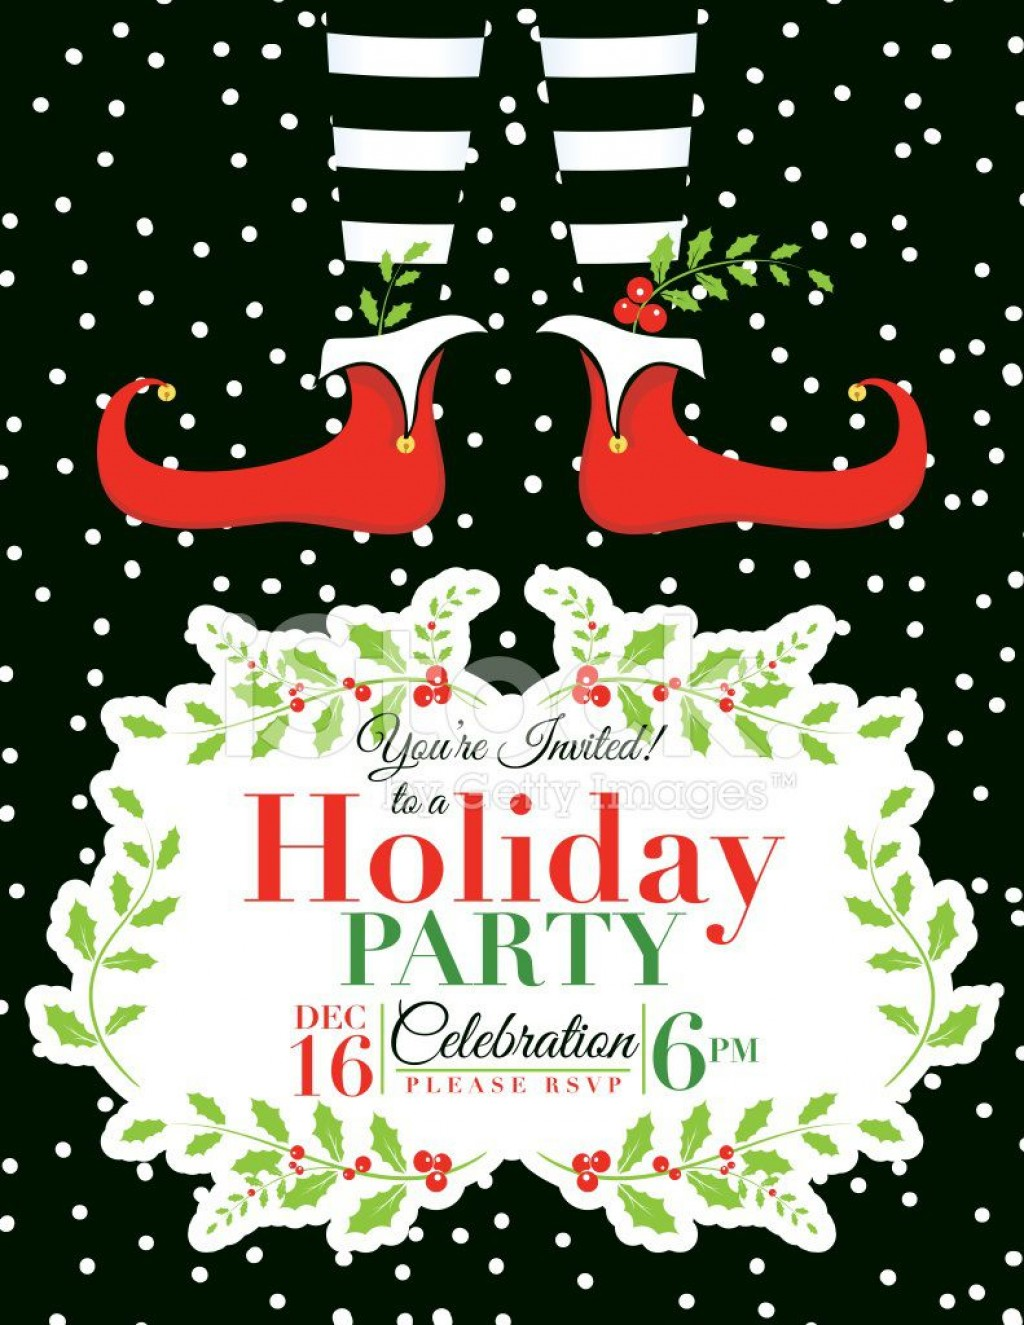 009 Surprising Free Holiday Party Invitation Template Concept  Templates Printable Downloadable Christma OnlineLarge